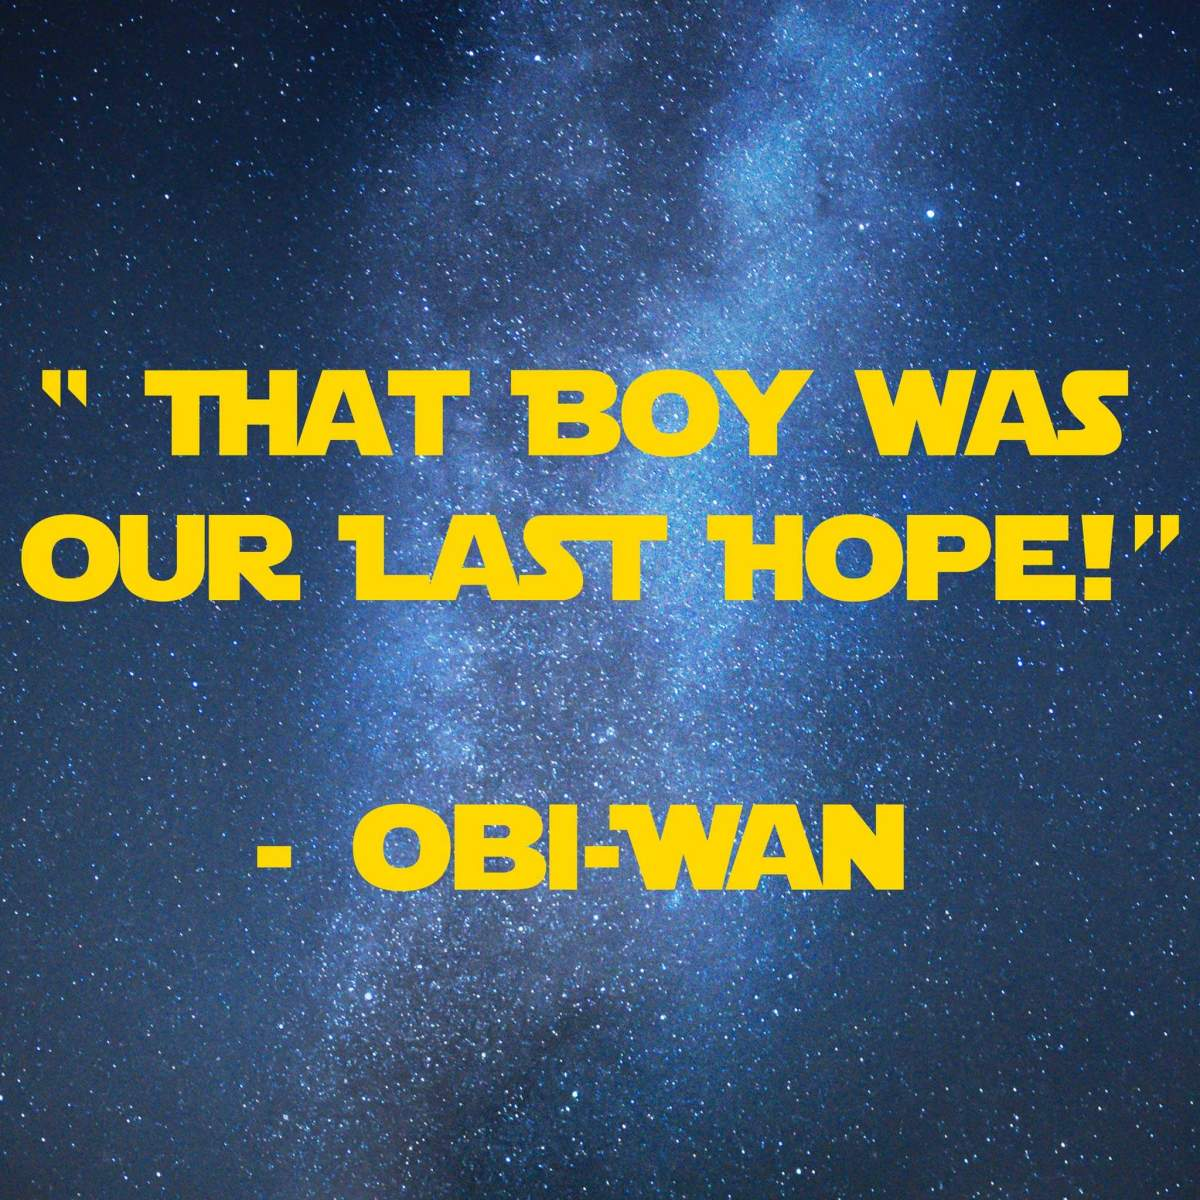 That Boy was our last hope | 31 Memorable Star Wars Quotes for Geeks